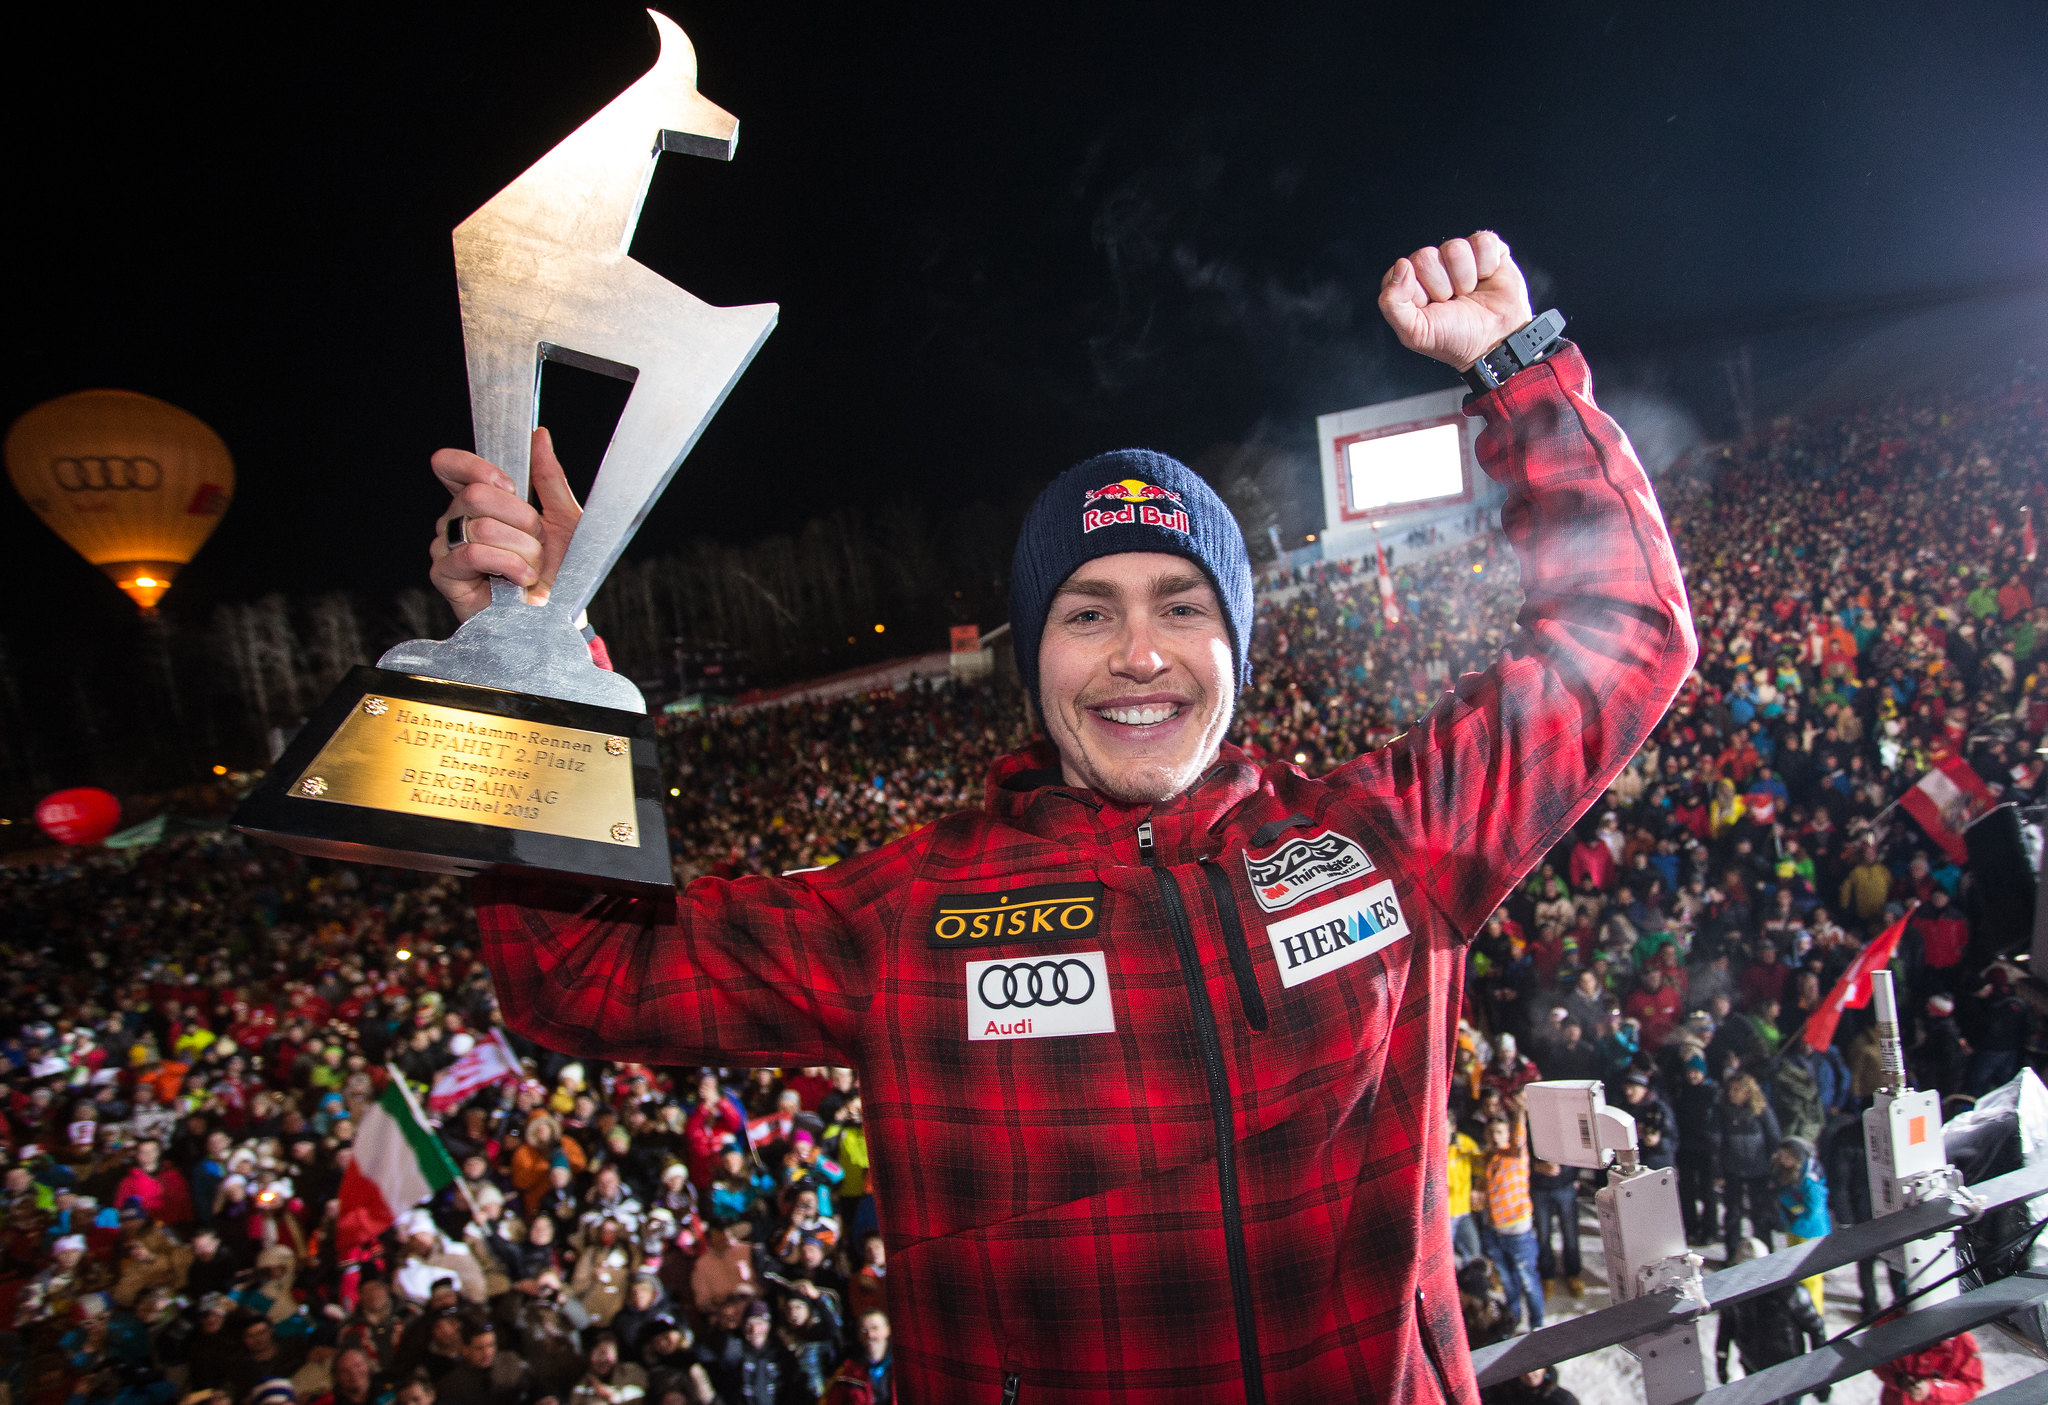 Erik Guay hoists his second-place trophy to a cheering crowd at the nighttime awards ceremony for the men's downhill in Kitzbühel, Austria.